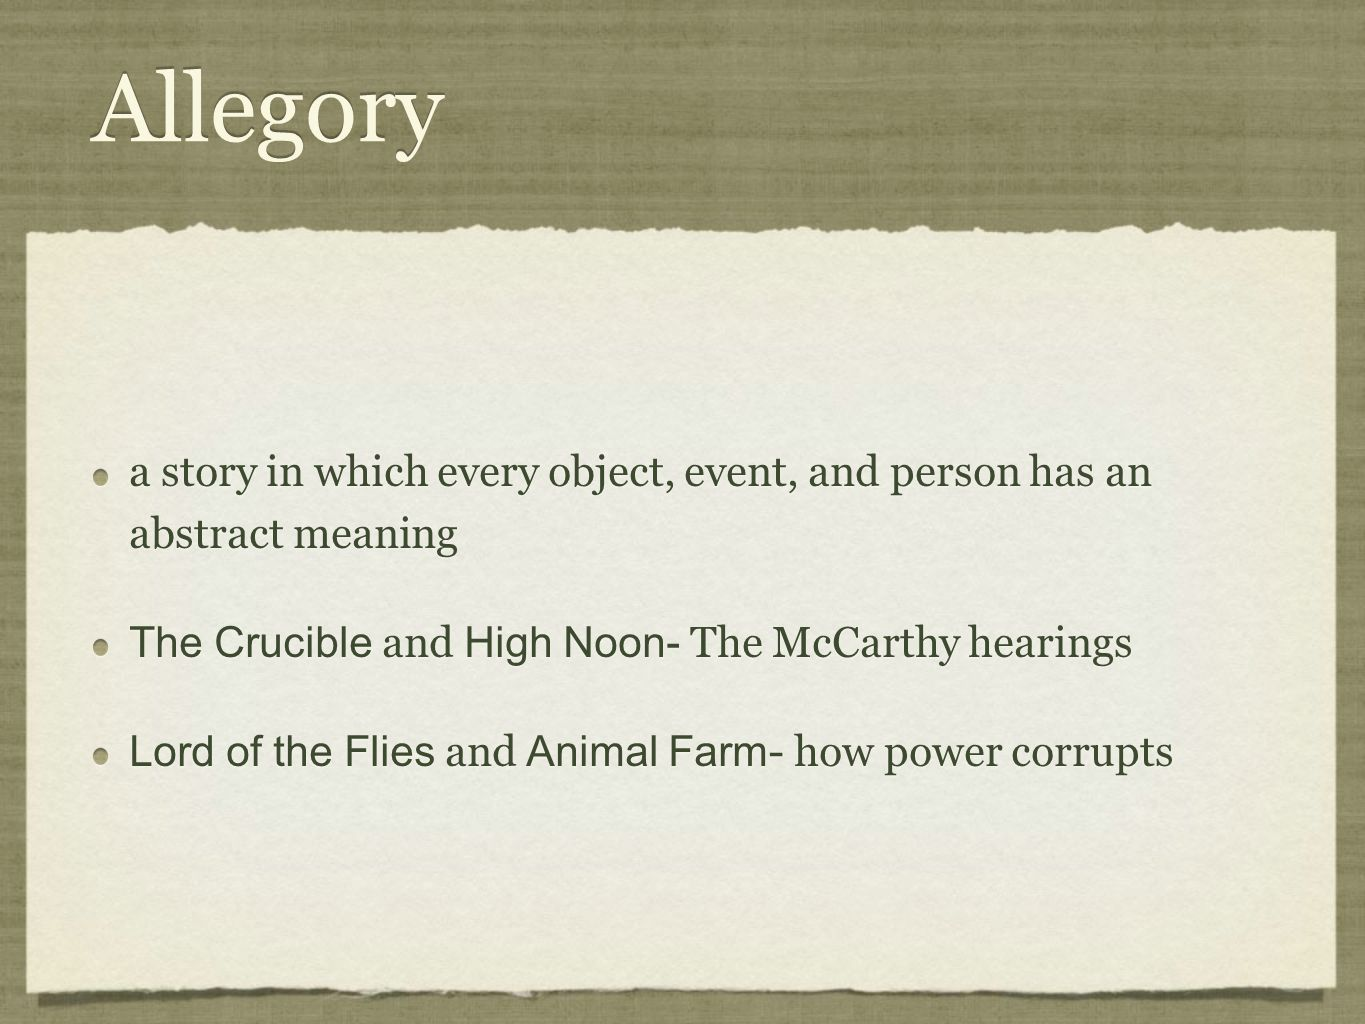 Allegory a story in which every object, event, and person has an abstract meaning. The Crucible and High Noon- The McCarthy hearings.